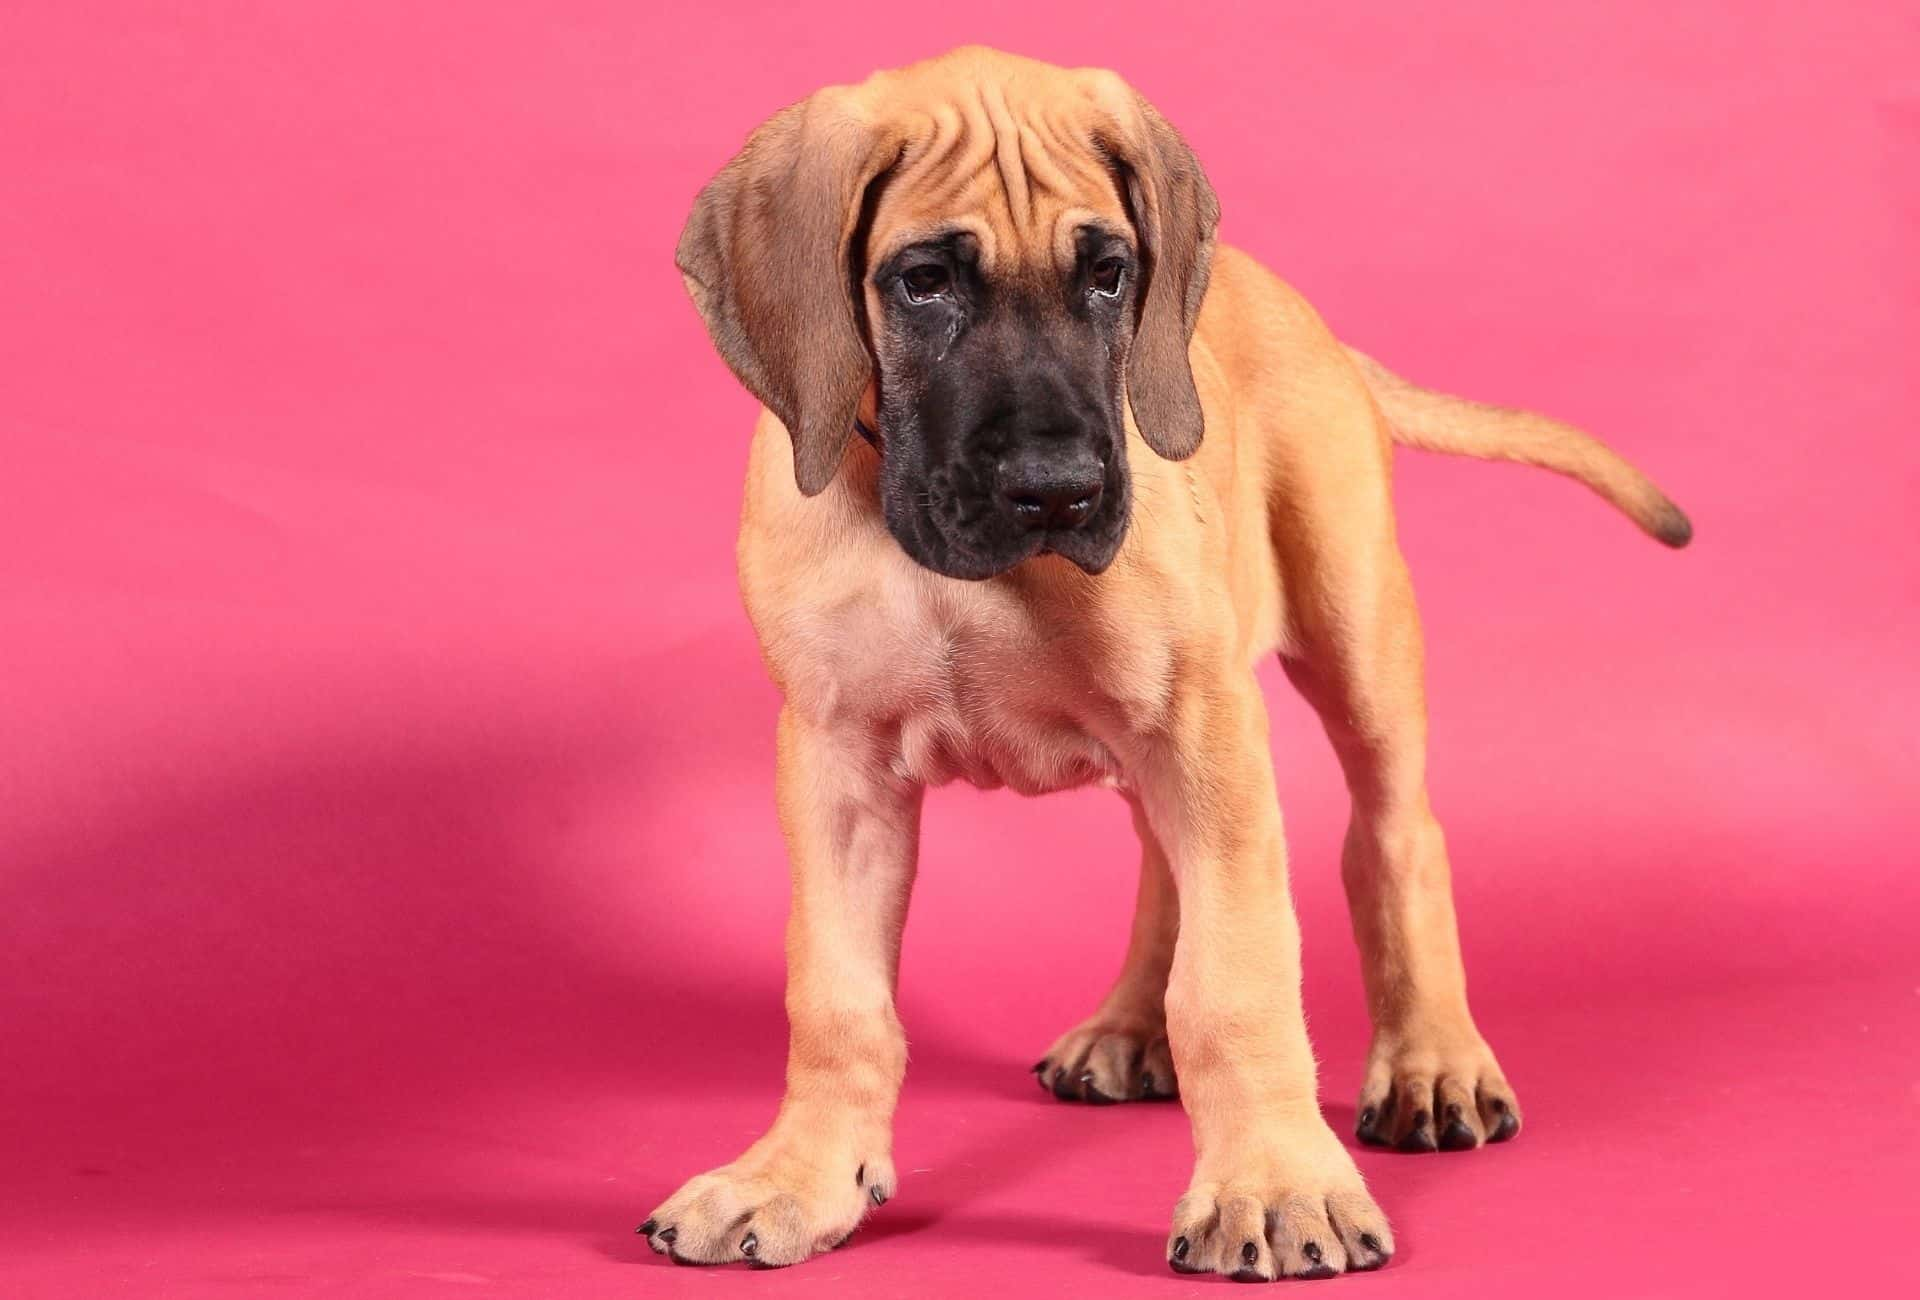 Cute Great Dane puppy with huge paws in front of a pink background.